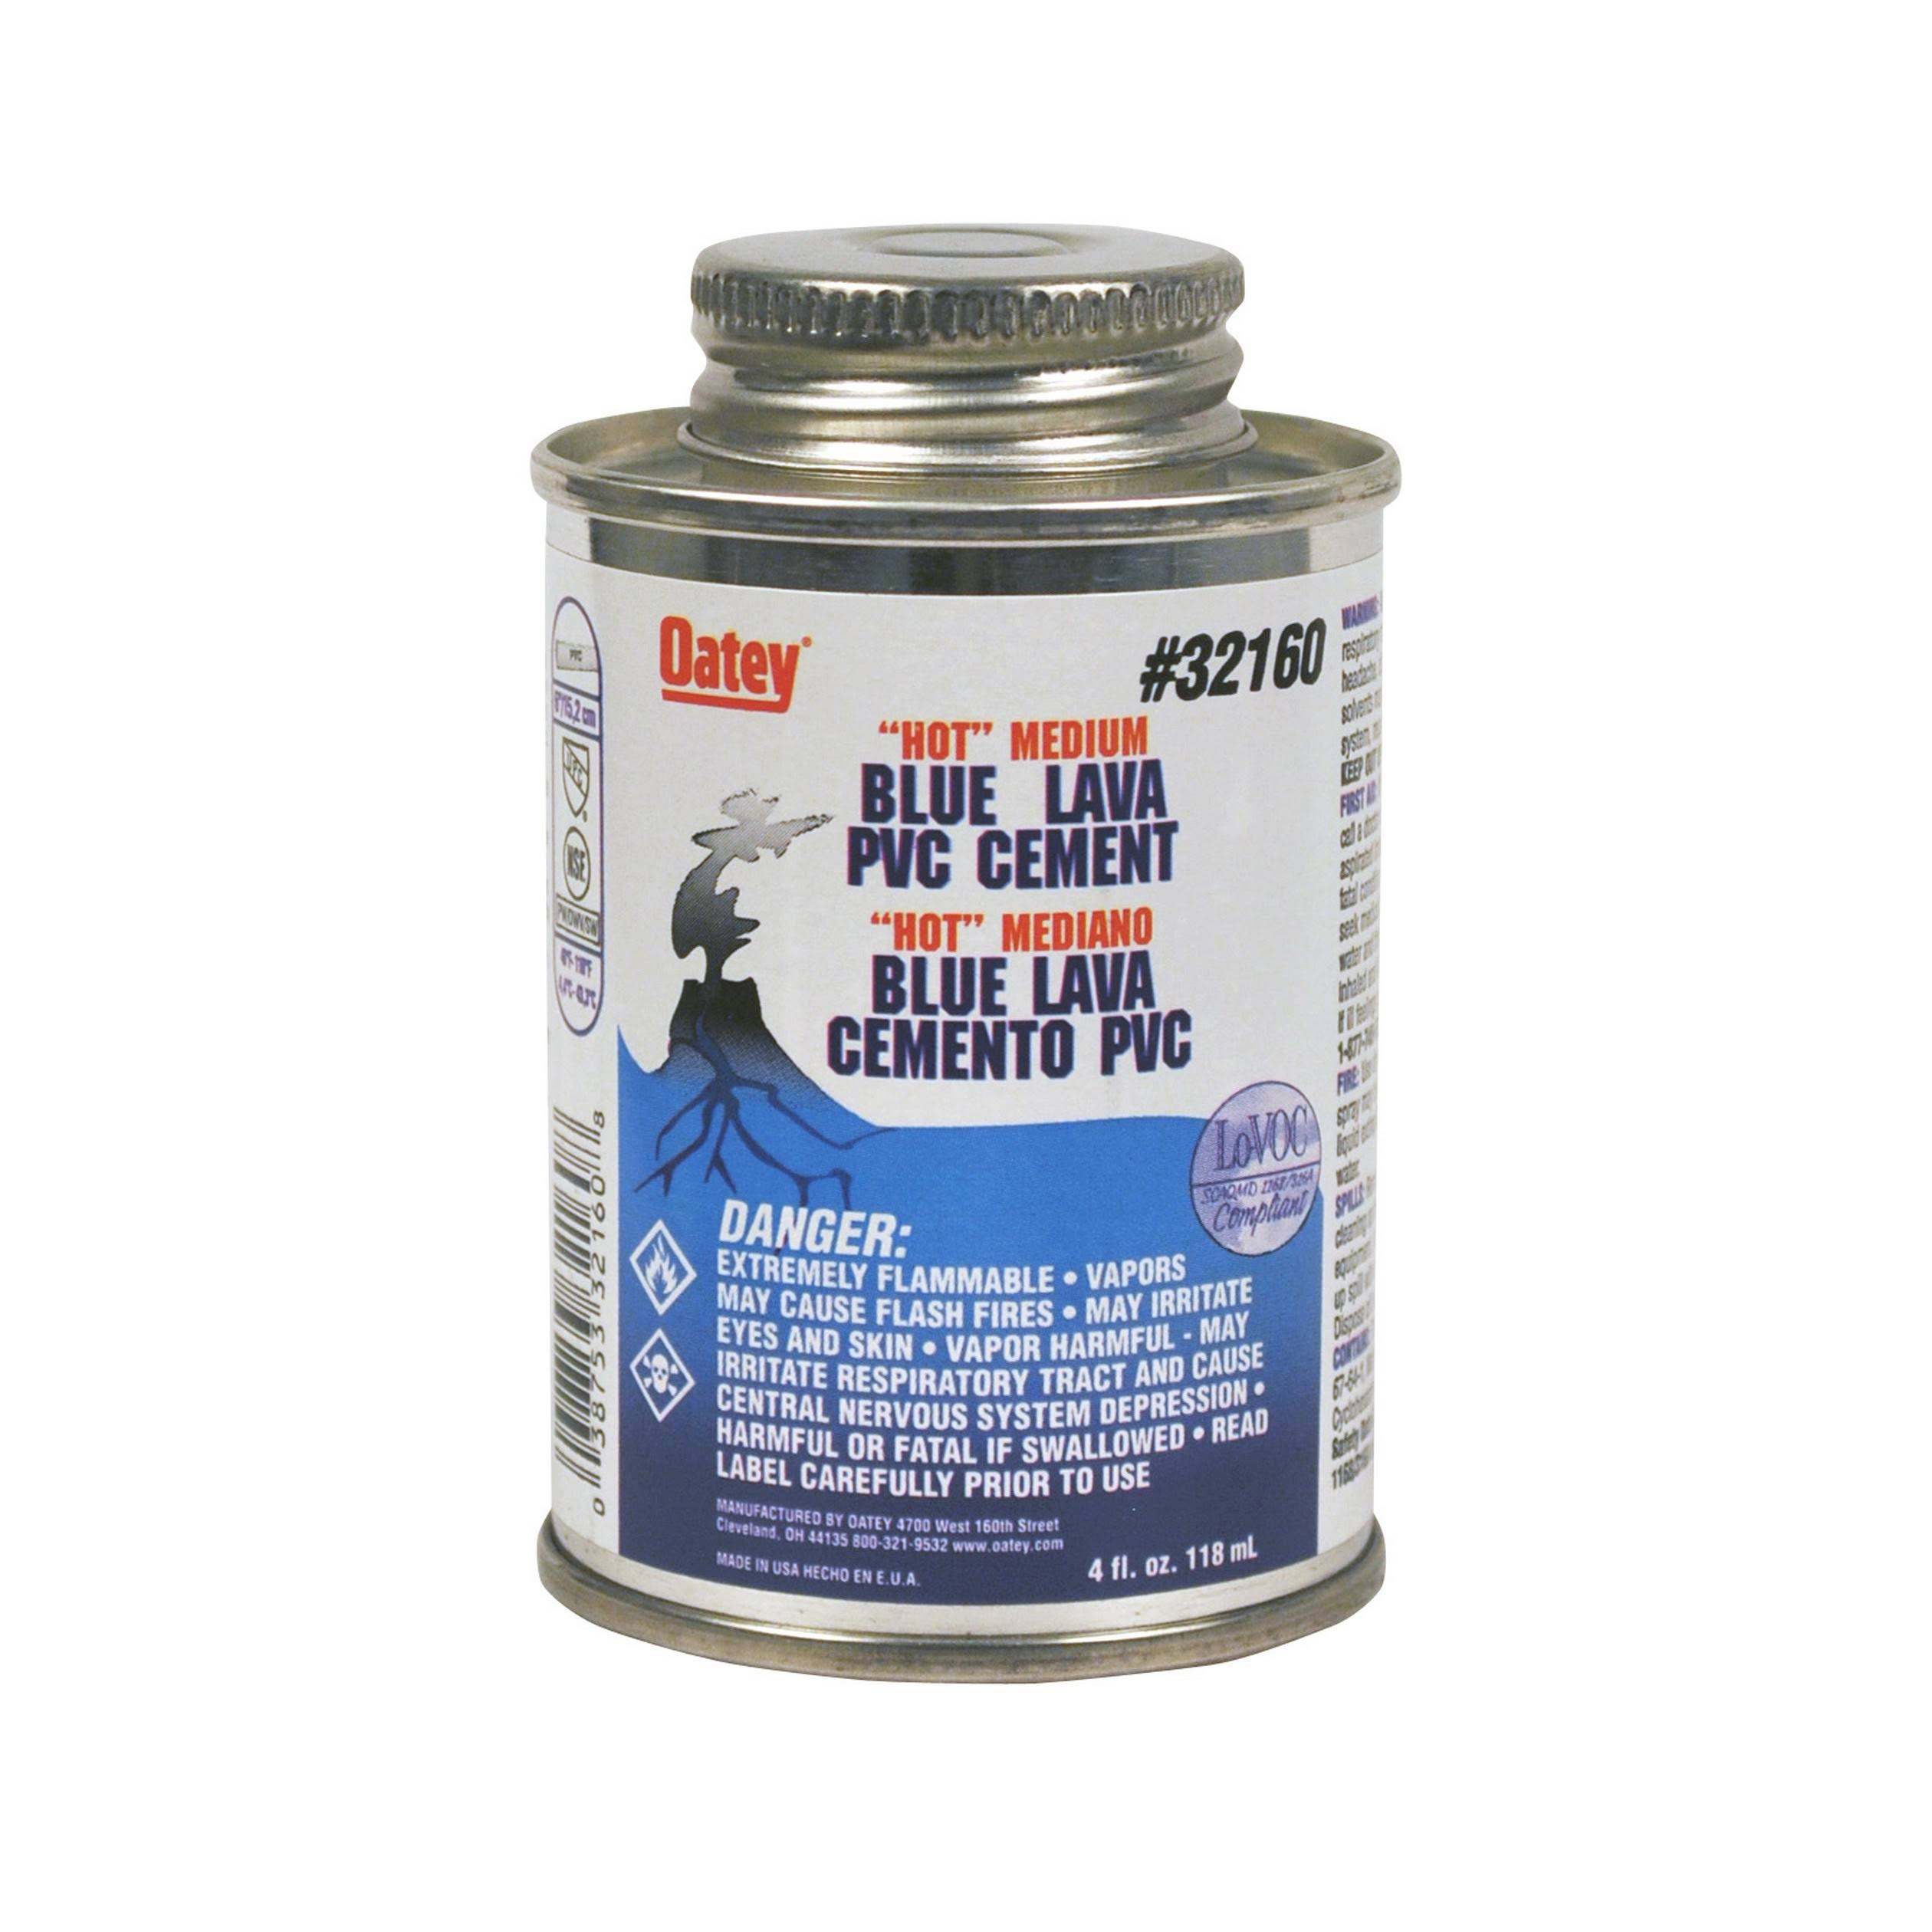 Oatey Flexible PVC Solvent Cement - Clear, 120ml